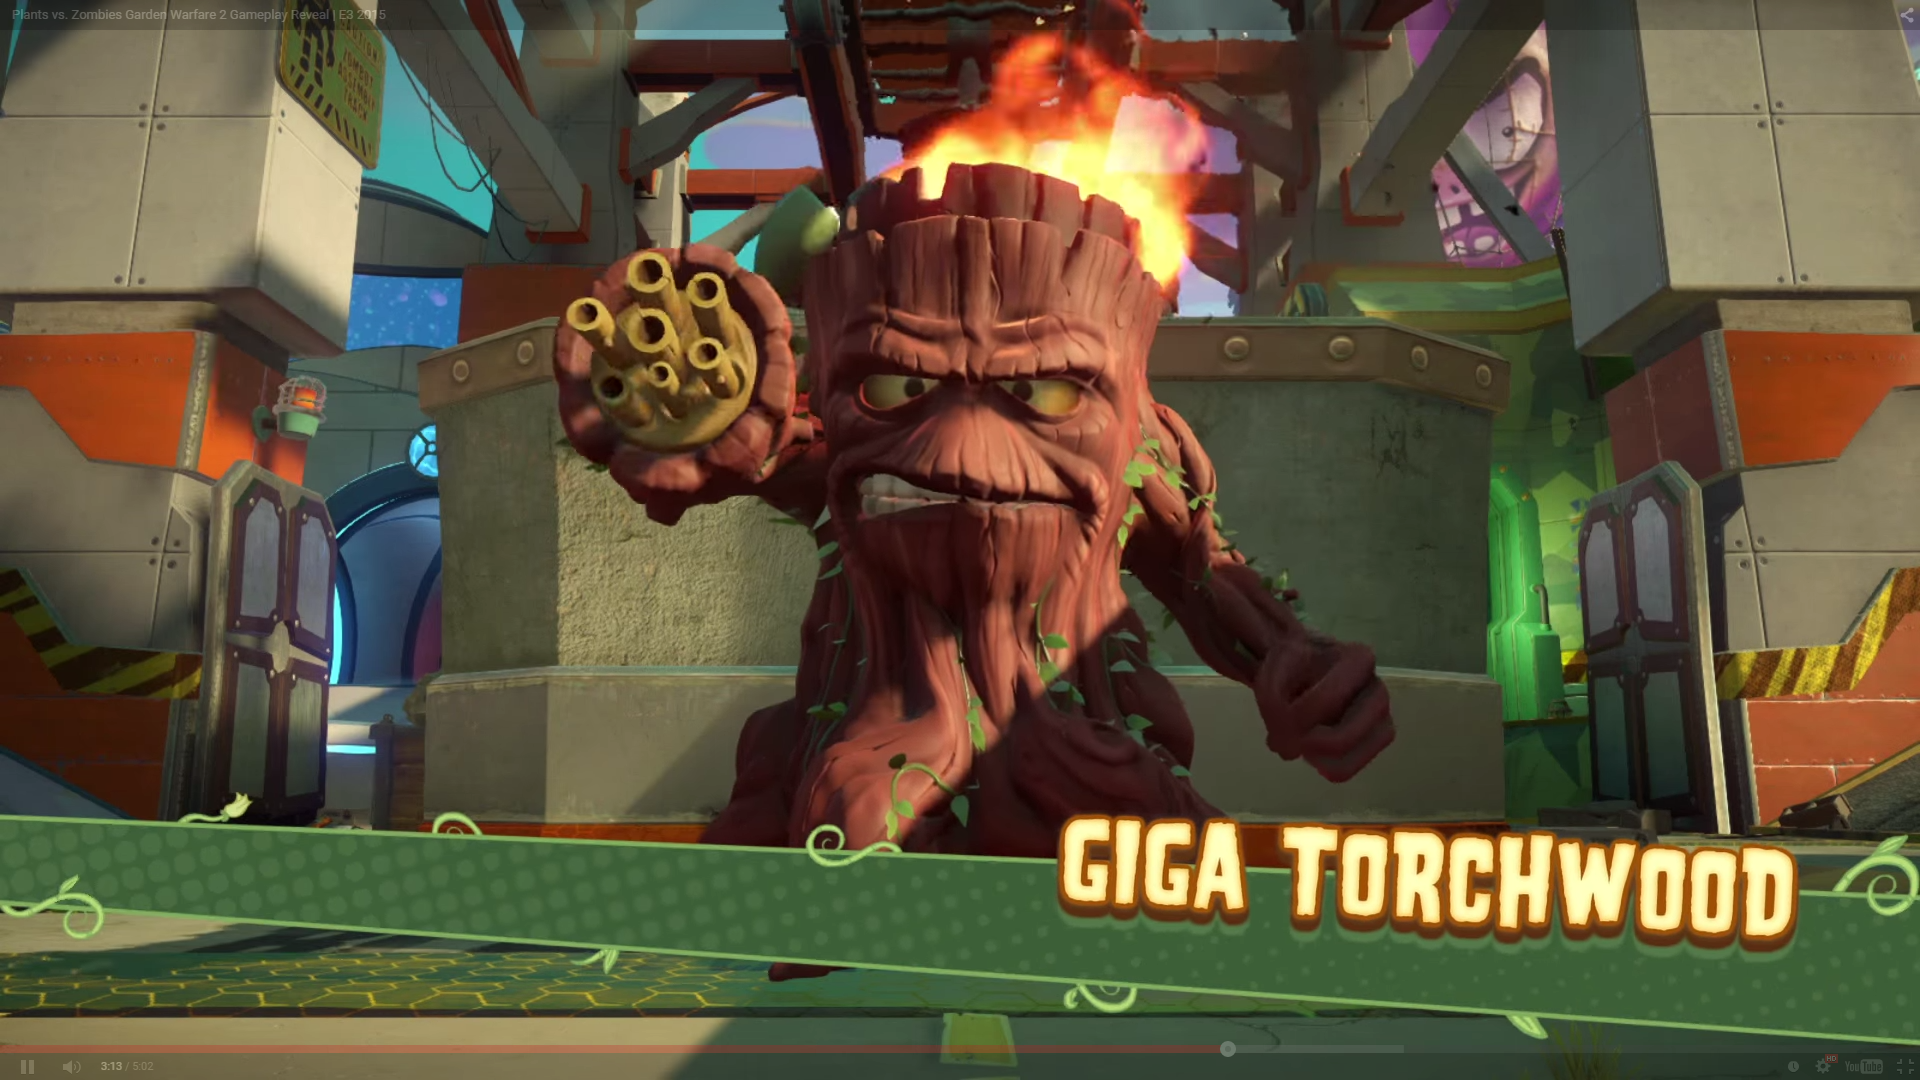 Image - Giga torchwood.png | Plants vs. Zombies Wiki | FANDOM ...